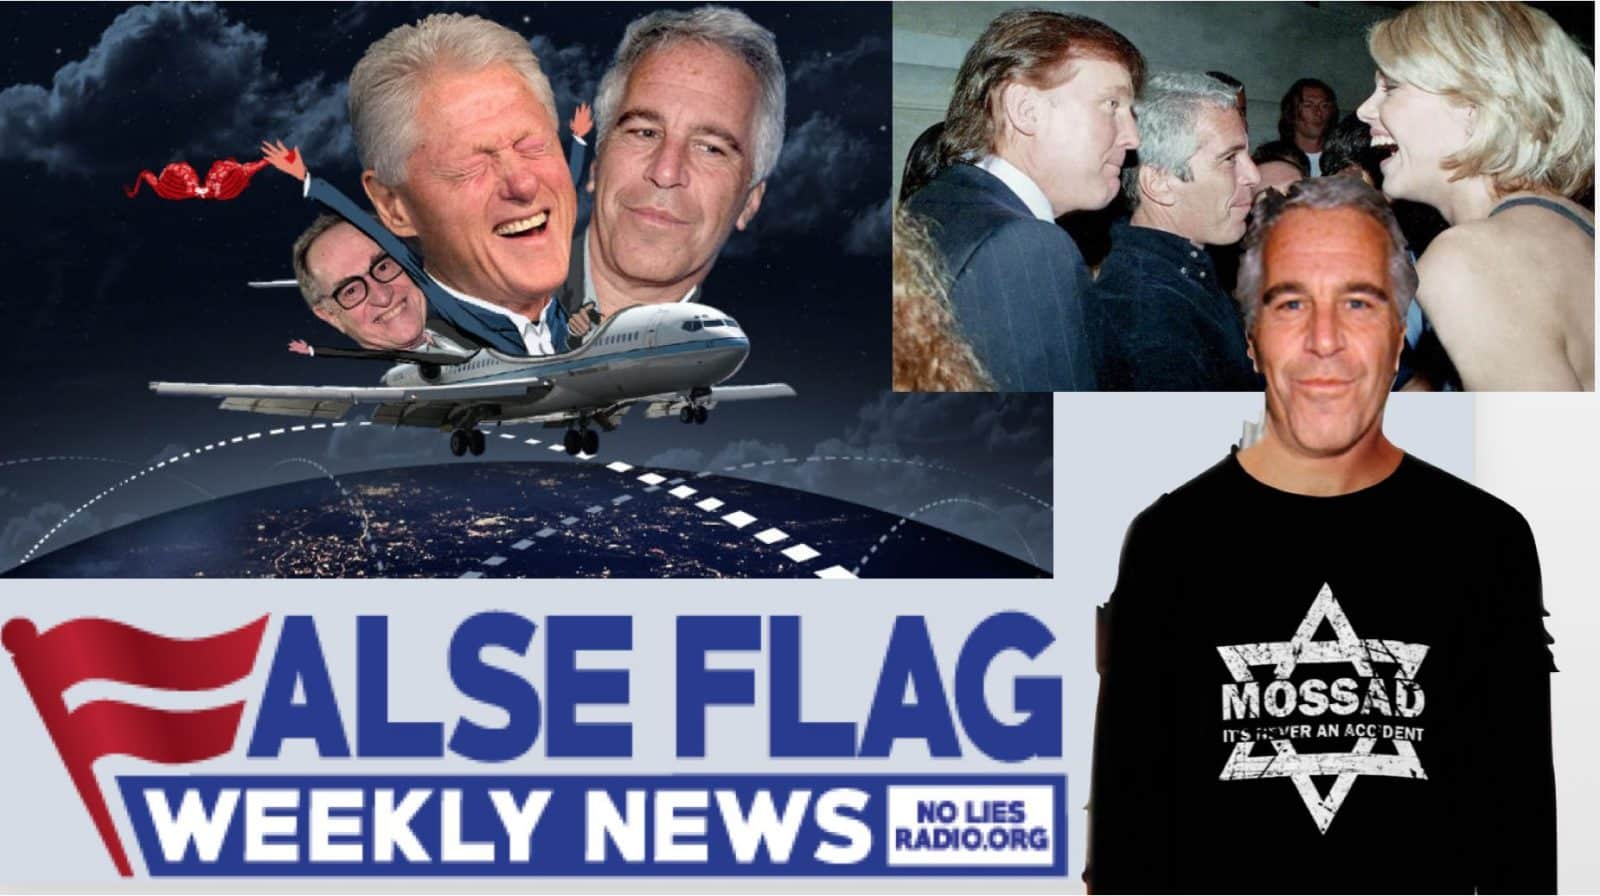 FFWN: Ian Greenhalgh exposes Mossad assets Jeffrey Epstein, Ghislaine Maxwell…and Donald Trump